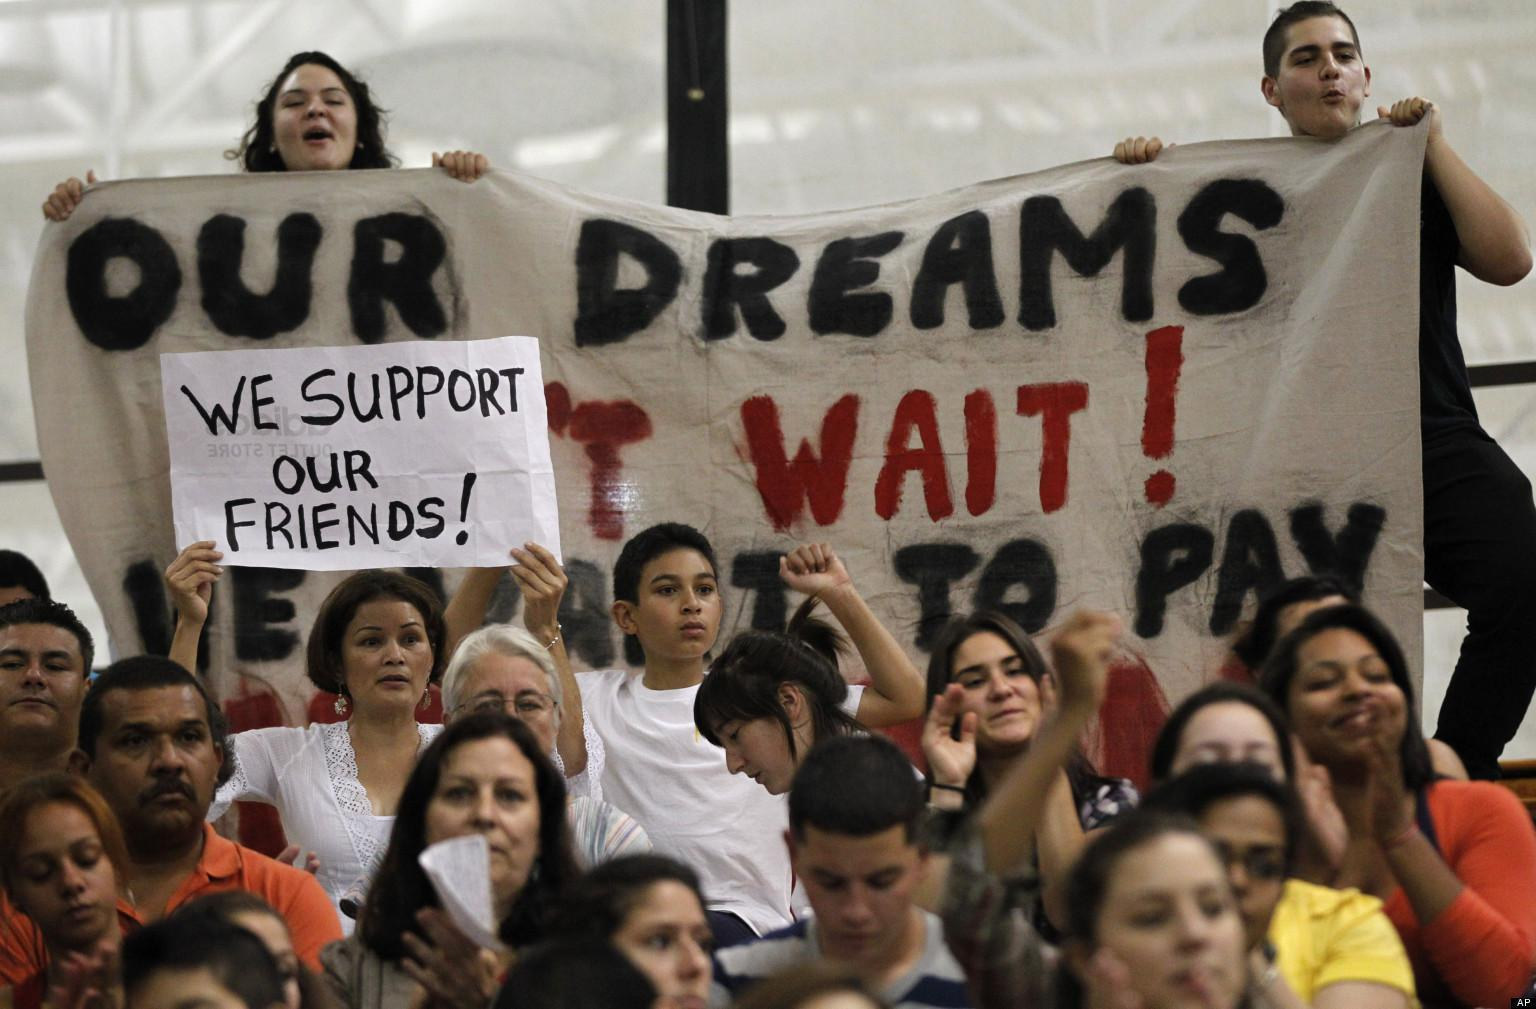 illegal immigrants and the american dream 10 horribly violent crimes that were committed by illegal violent crimes that were committed by illegal immigrants to subscribe to the american dream.